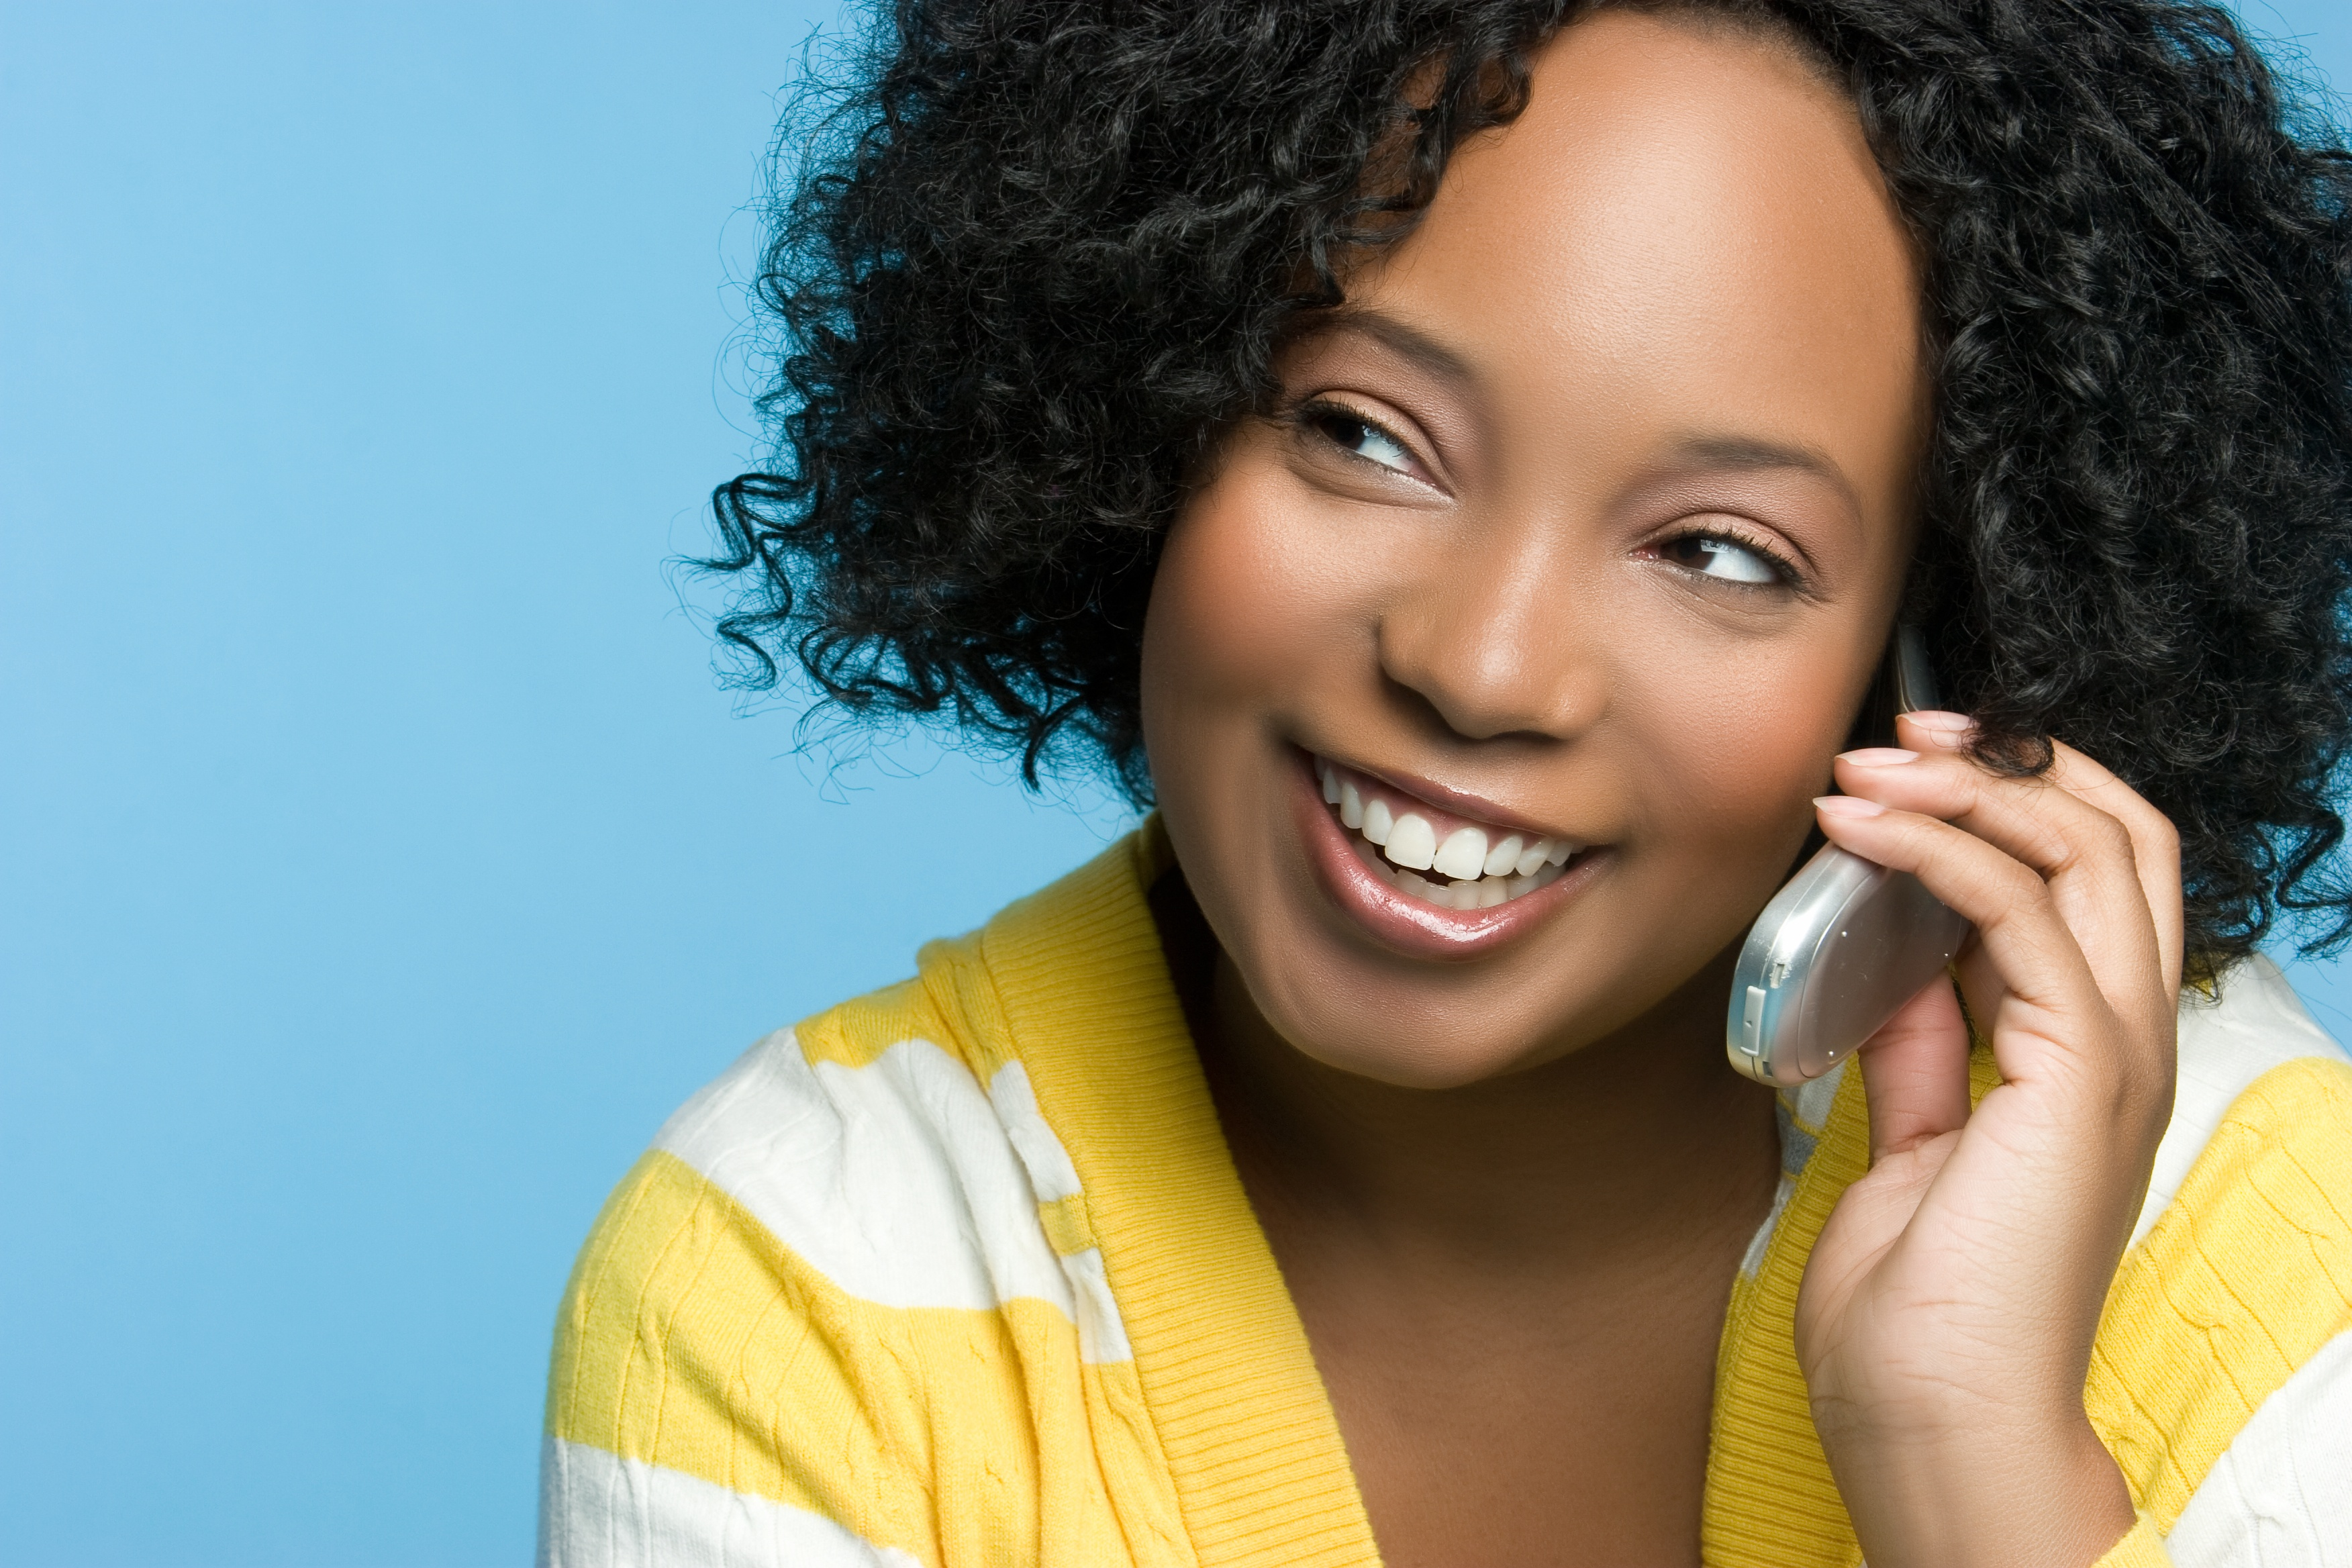 Woman talking on phone 340B home delivery pharmacy